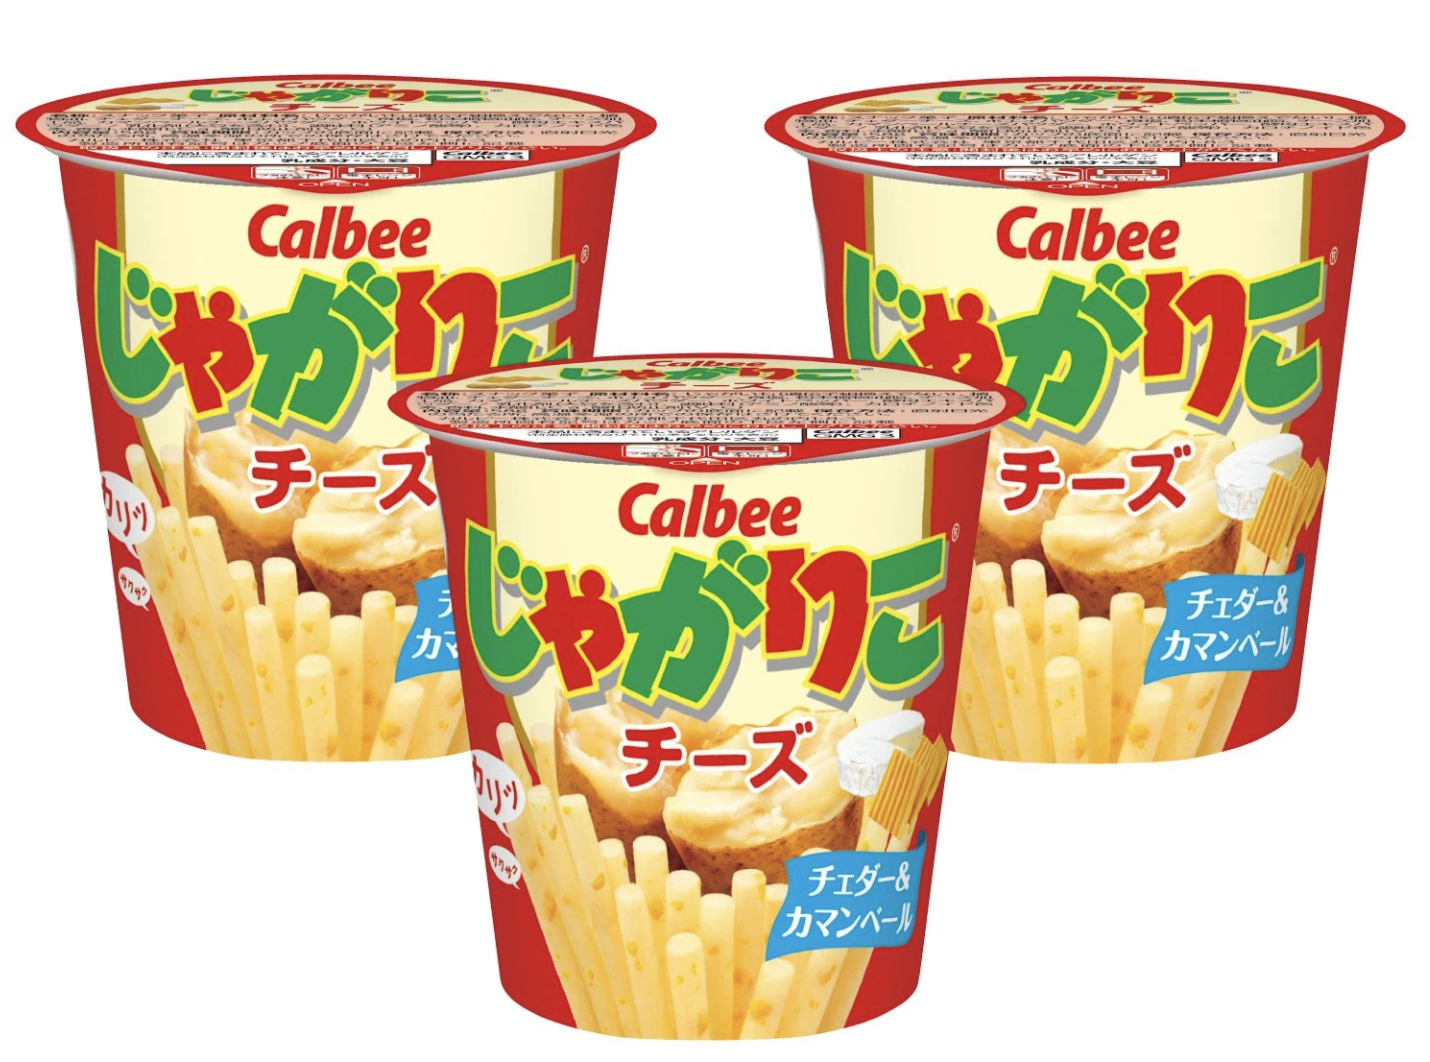 Calbee cheese potato sticks